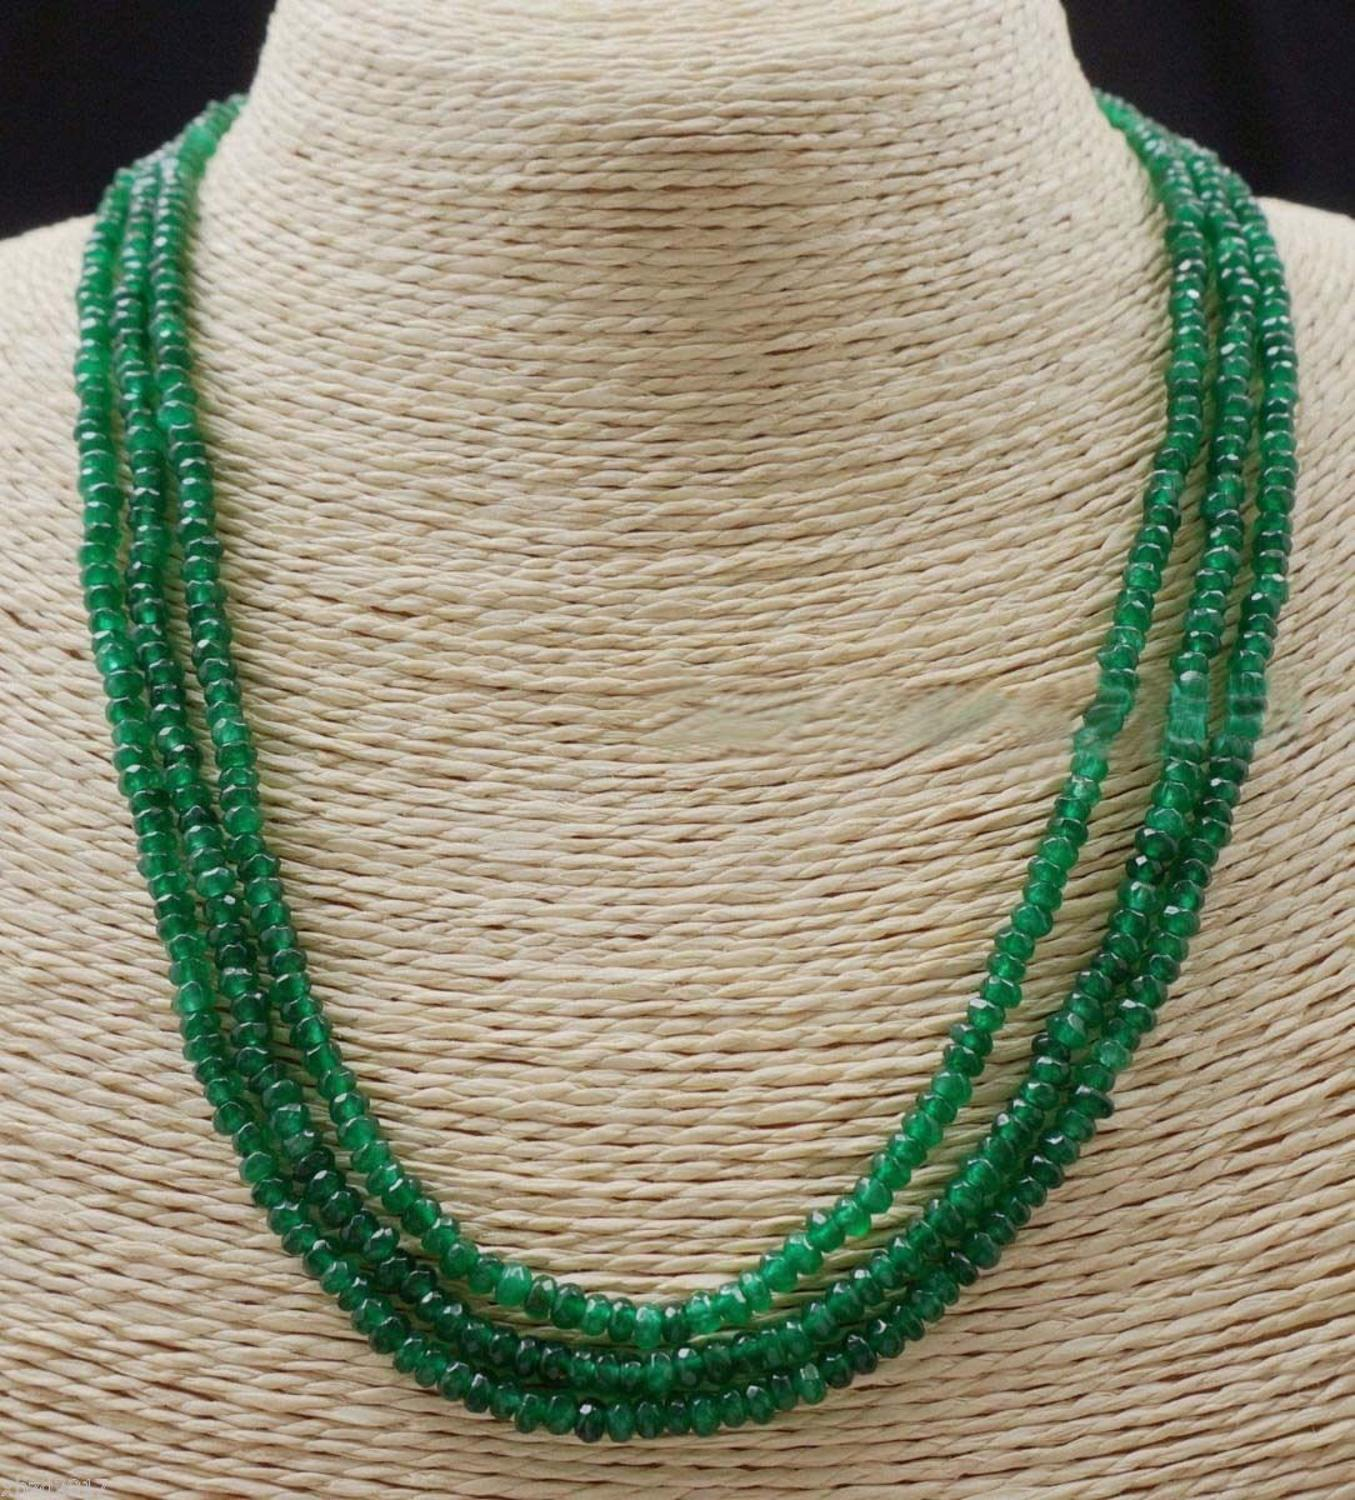 GENUINE NATURAL 3 Rows 2X4mm FACETED GREEN ABACUS BEADS NECKLACE17 19 #@